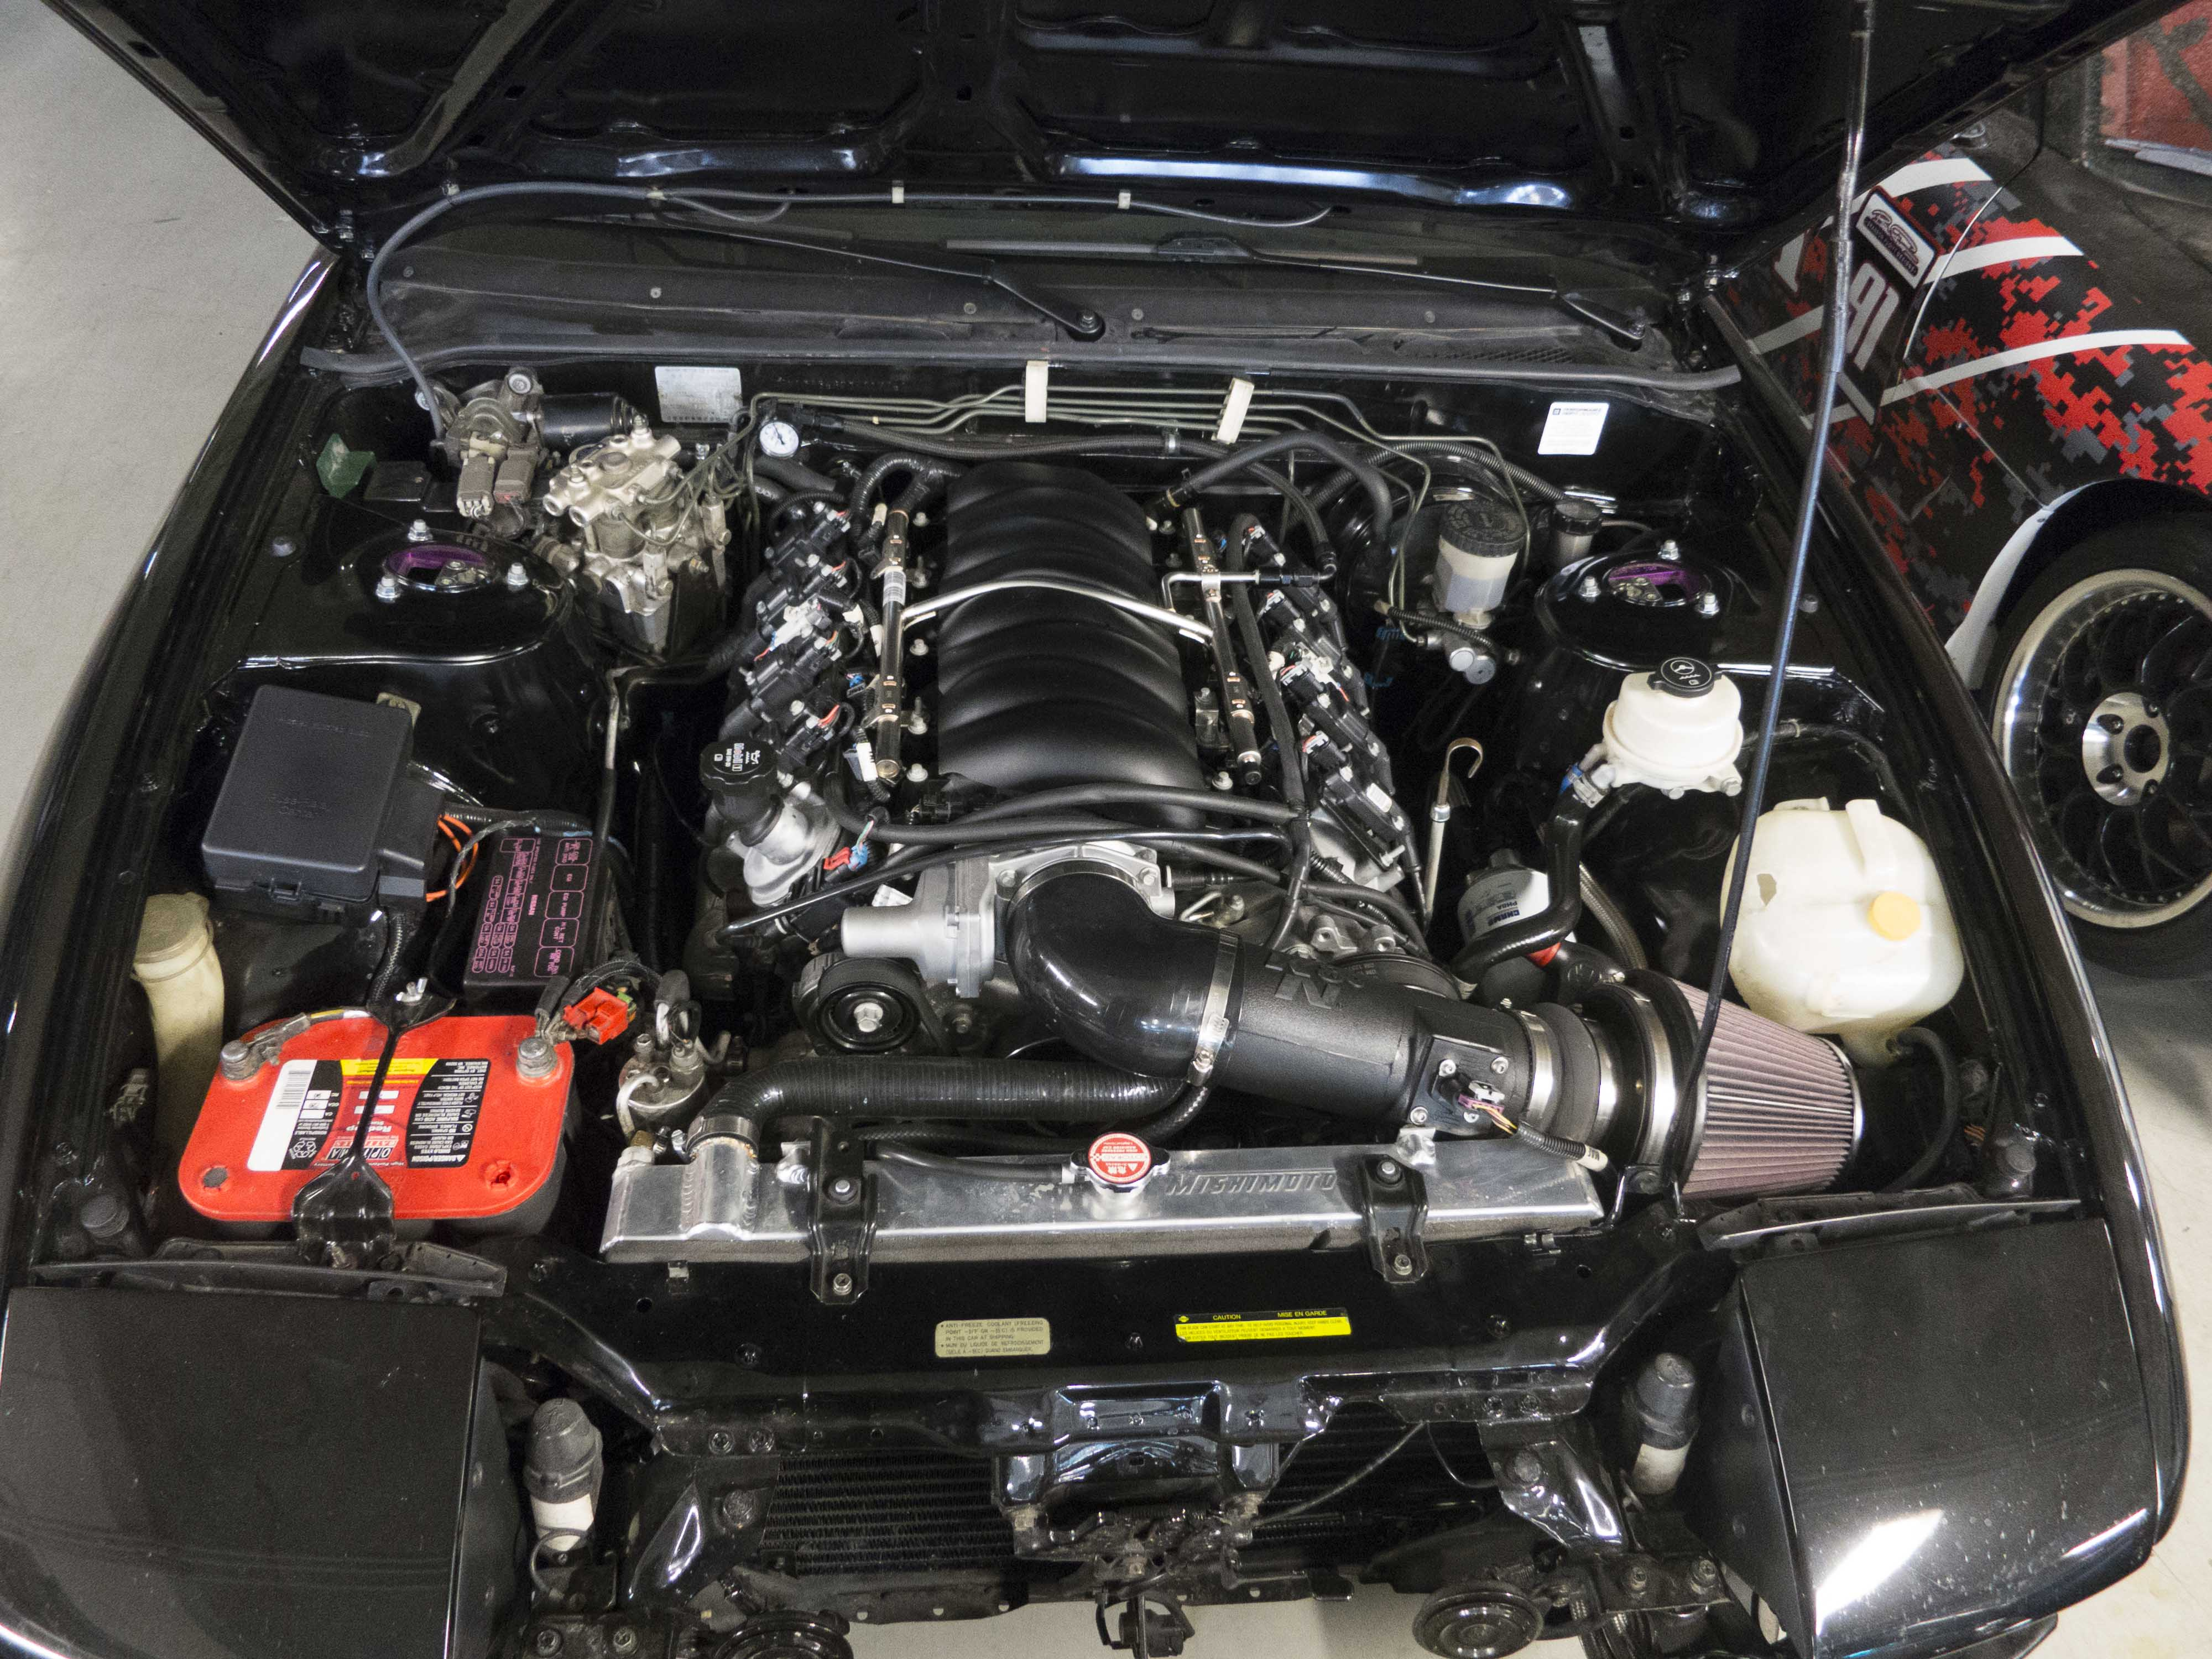 Nissan Silvia S13 Ls Swap Kit Engine And Trans Mounts Base Package Sikky